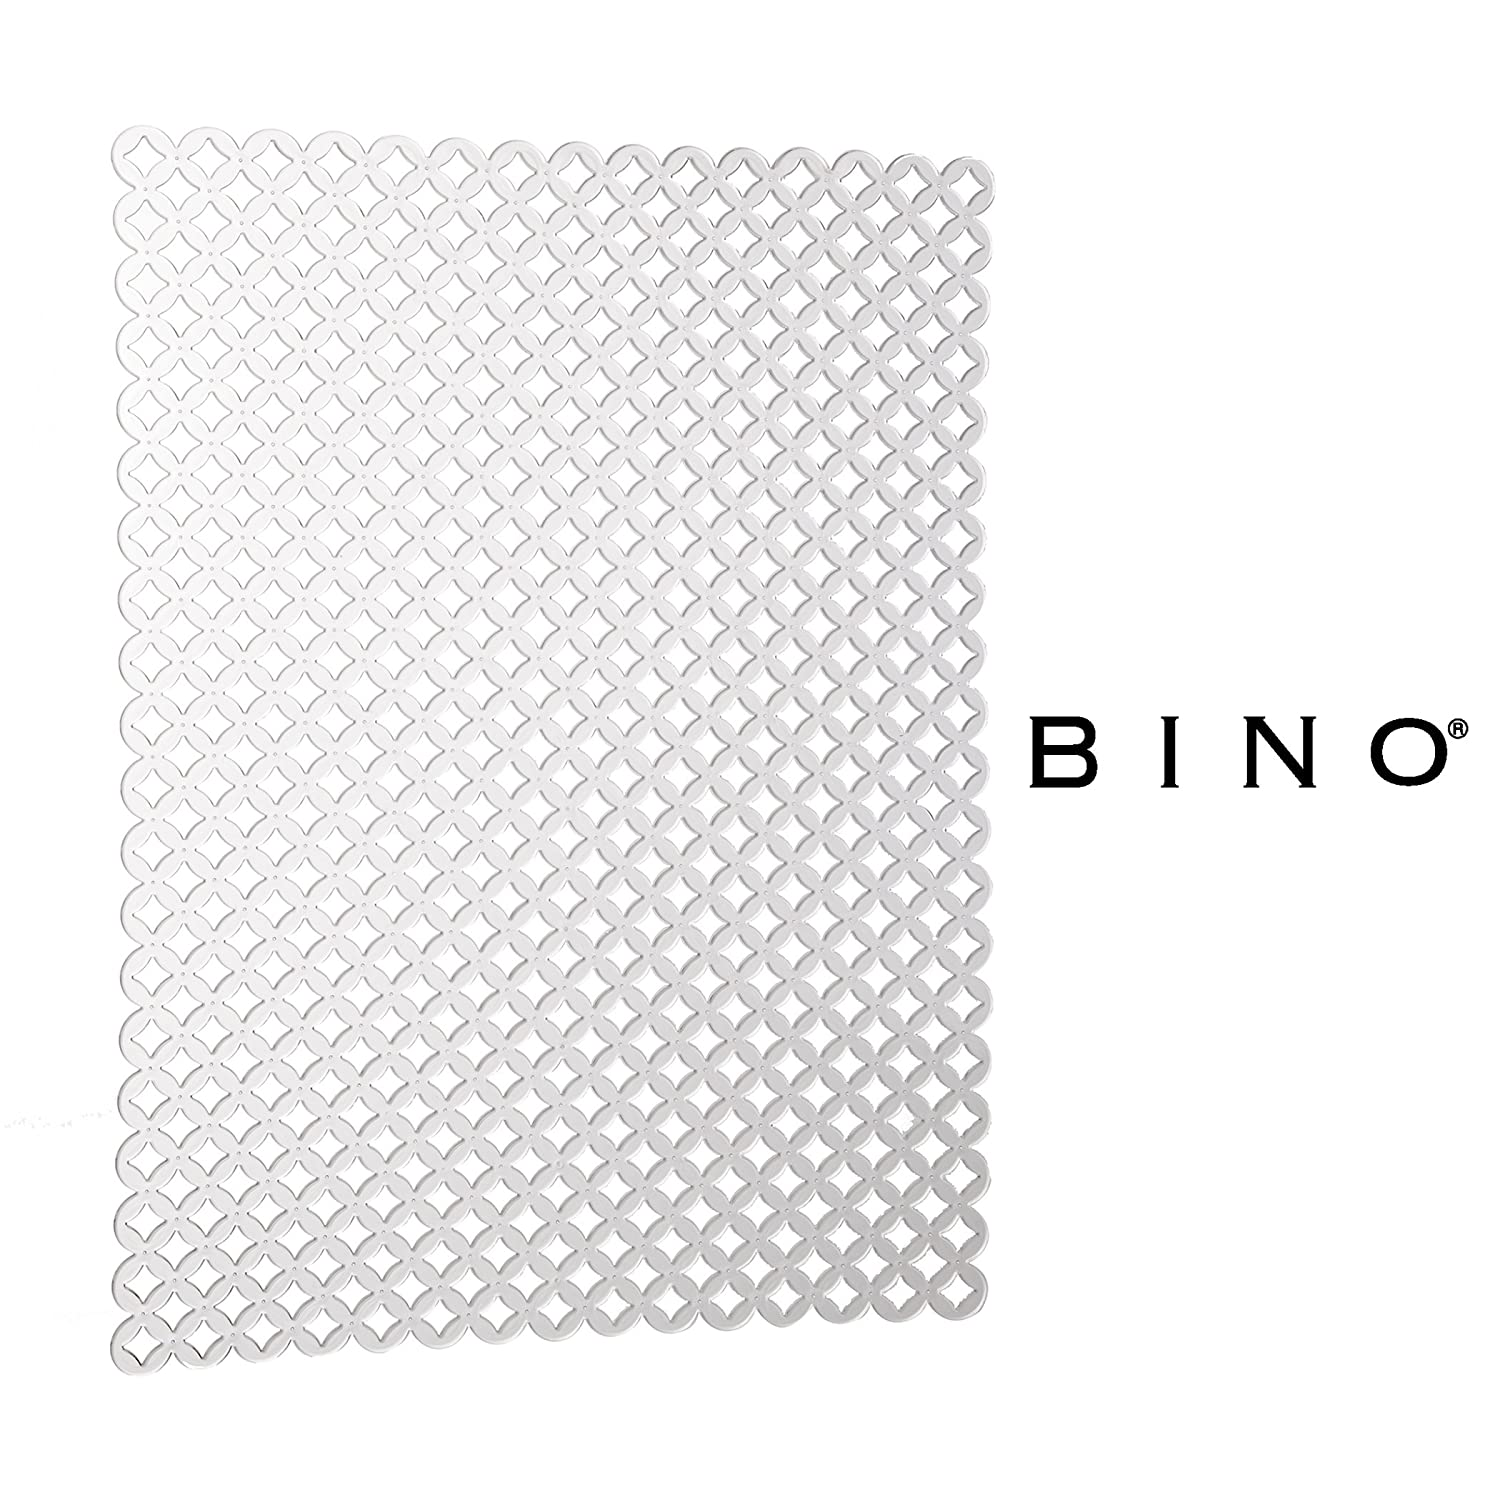 BINO Anti-Bacterial Kitchen Sink Protector Mat, Clear - Eco-Friendly - Mold and Mildew Resistant with Quick Draining Design 30503-CLR